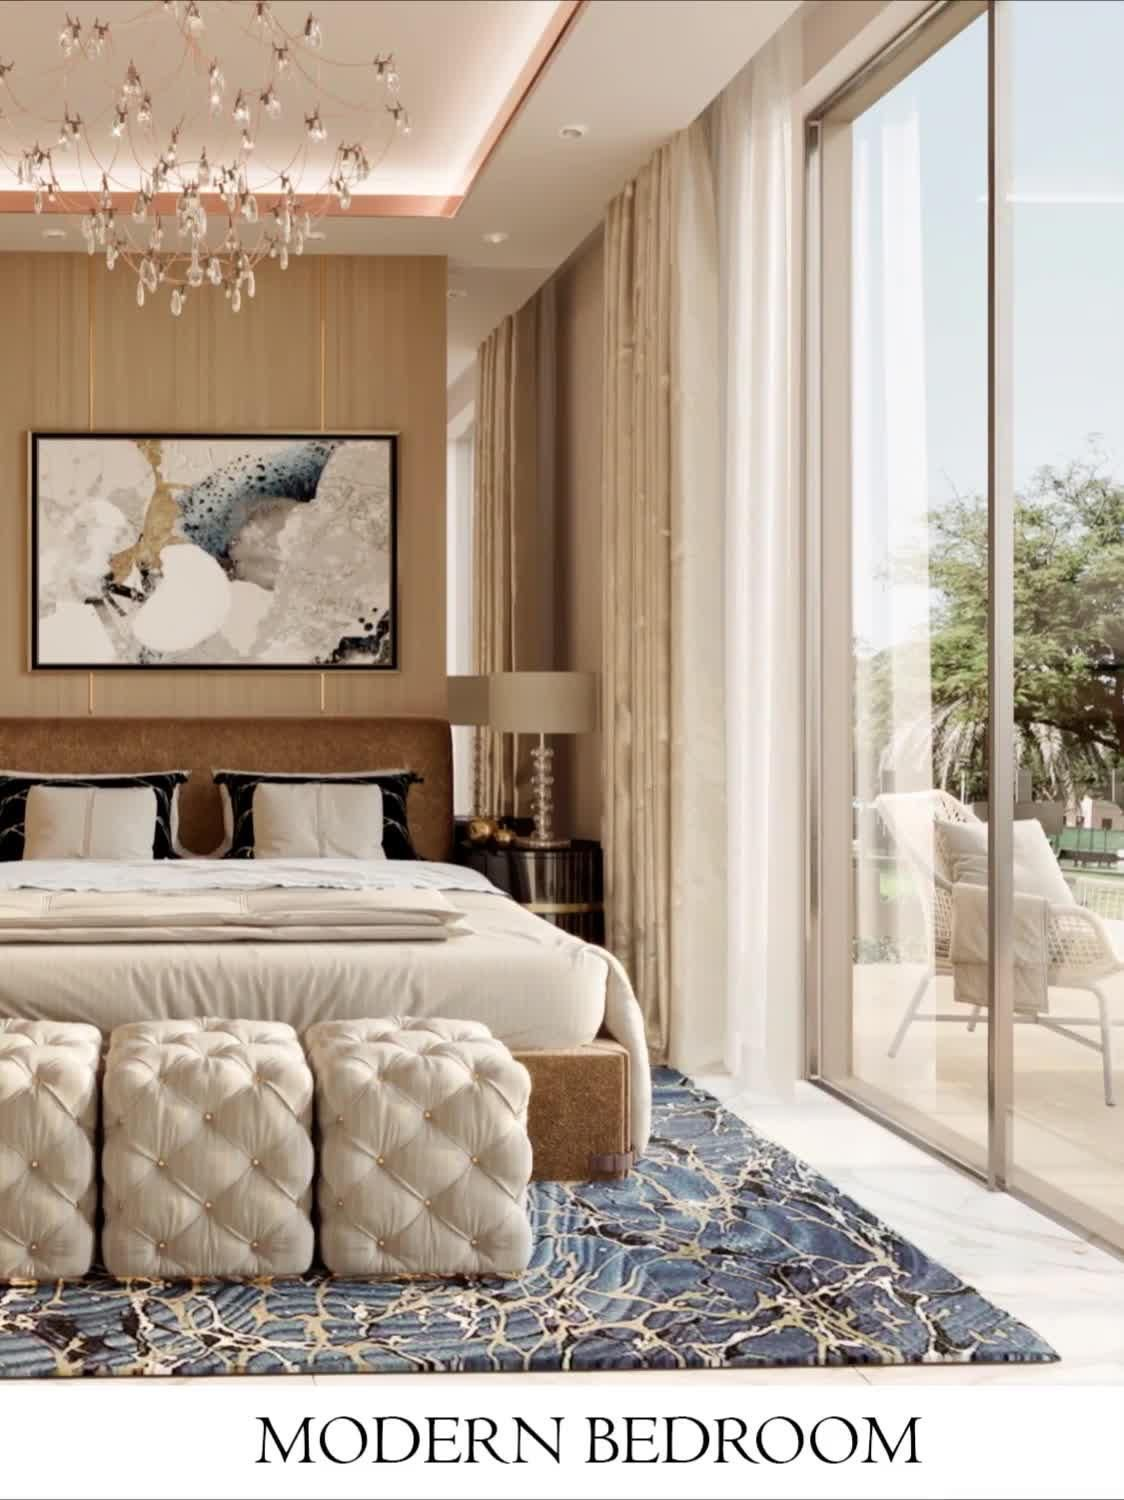 it is a luxury large bedroom interior videos by Fancy designers